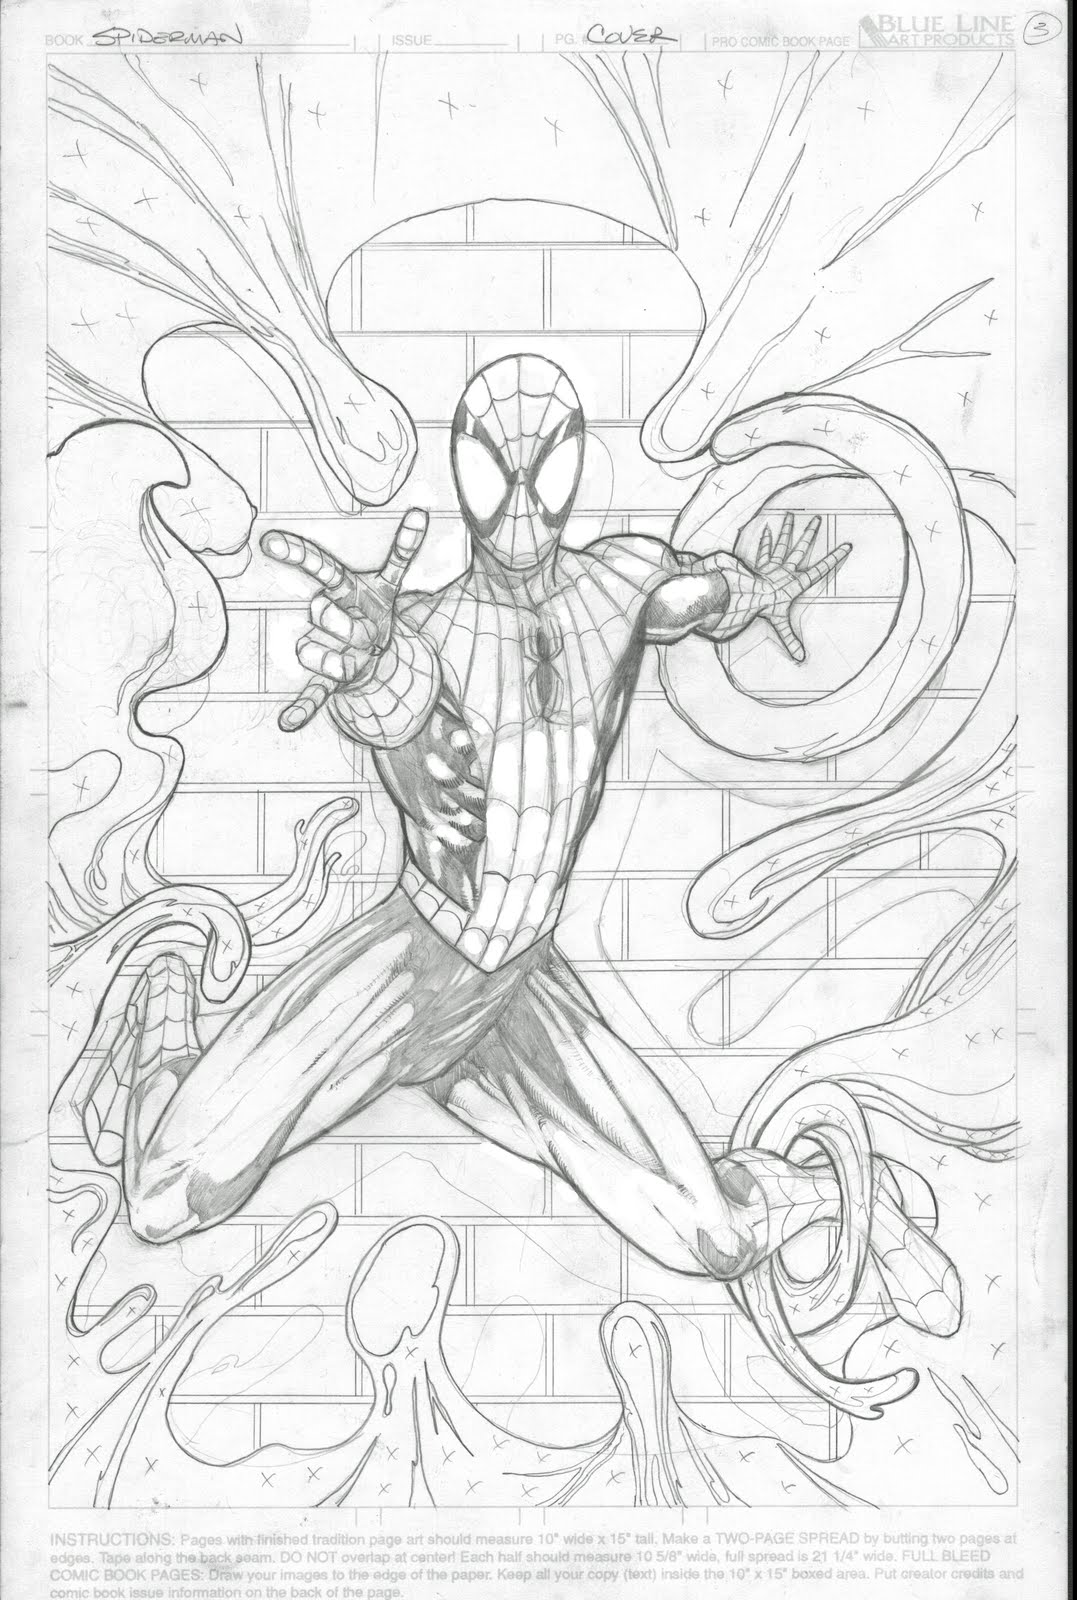 Venom coloring pages spiderman free coloring pages for Spiderman vs venom coloring pages